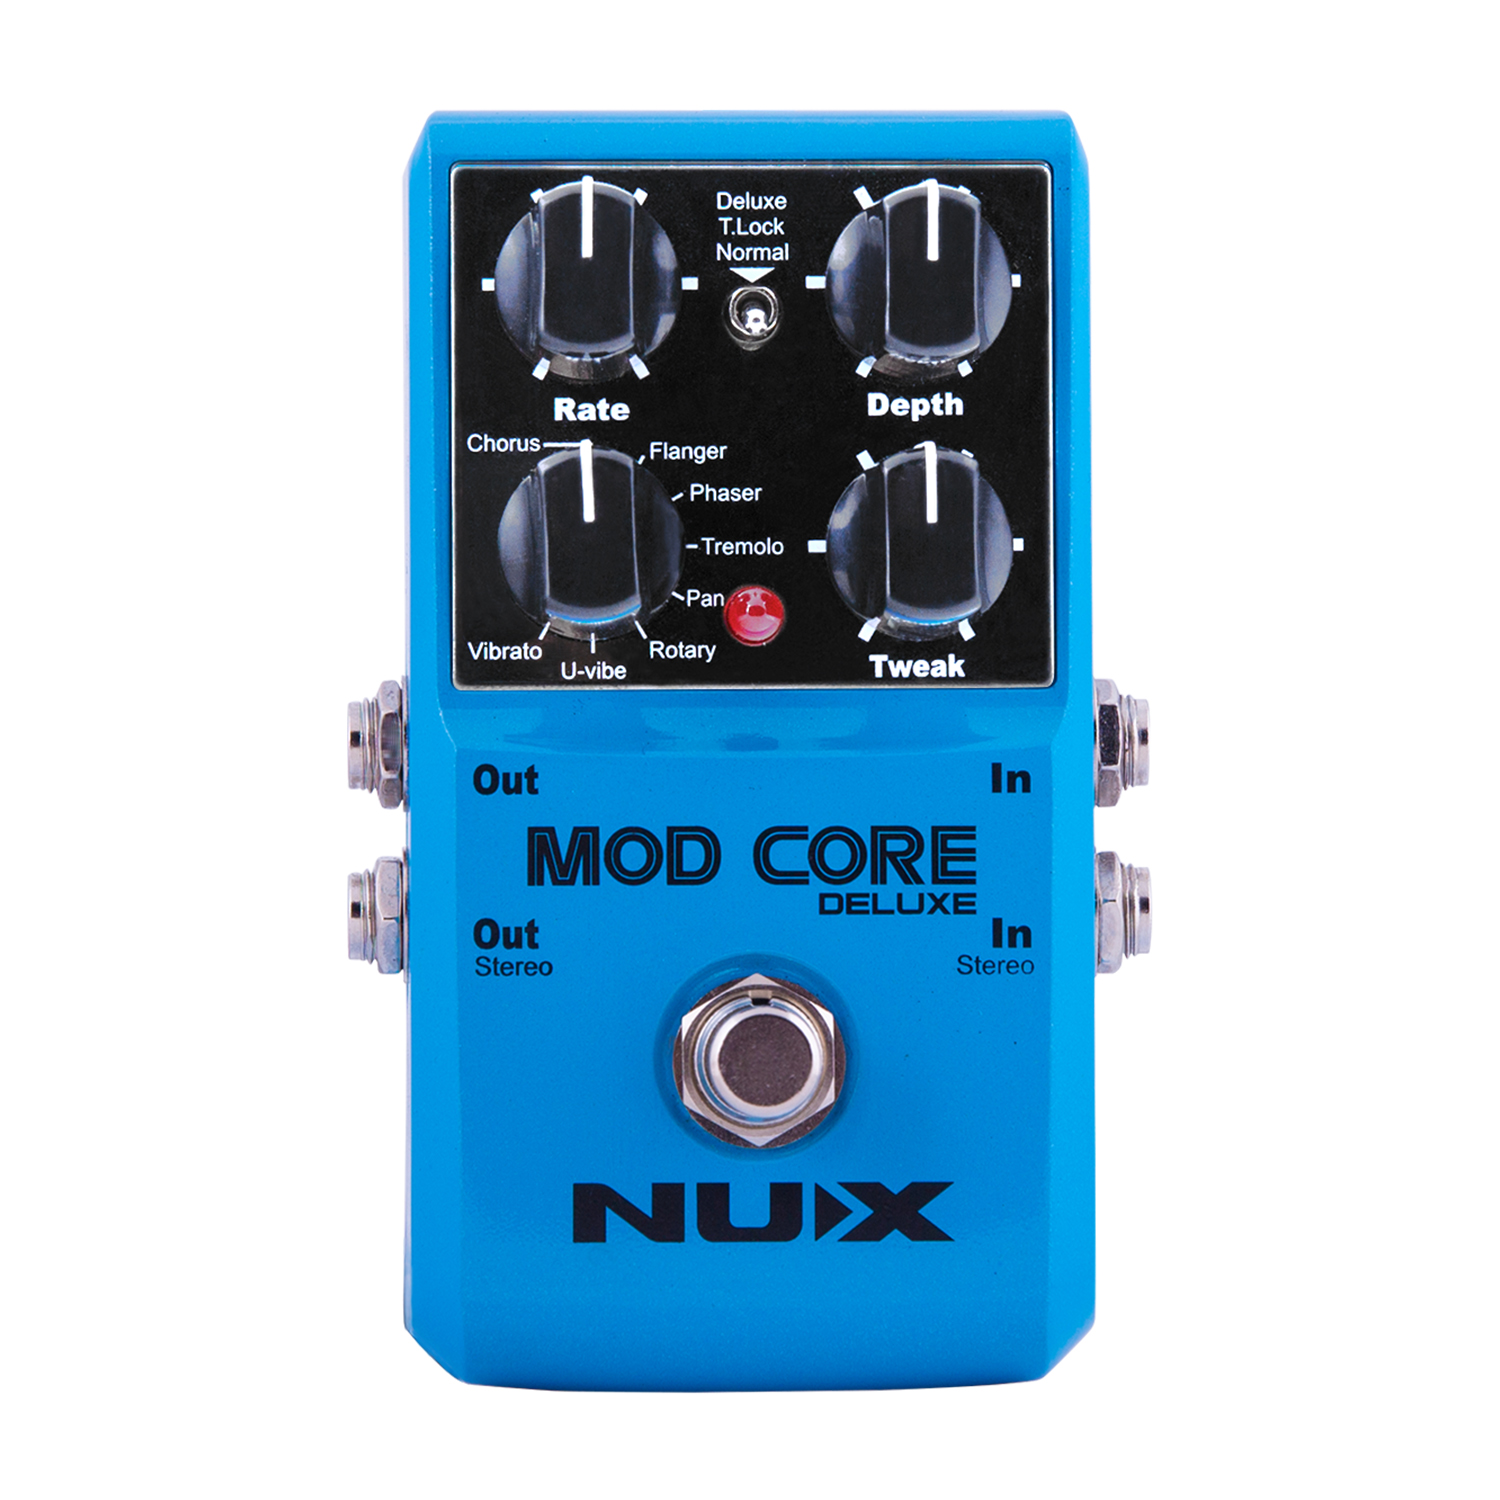 NUX Mod Core Deluxe Modulation Guitar Effect Pedal Tone Lock  Upgraded Hardware 8 Modulation effects  TSAC Techn nux tape core deluxe tape echo guitar effect pedal decay modulation 3 repro head compact stompbox 7 delay sound with free gift